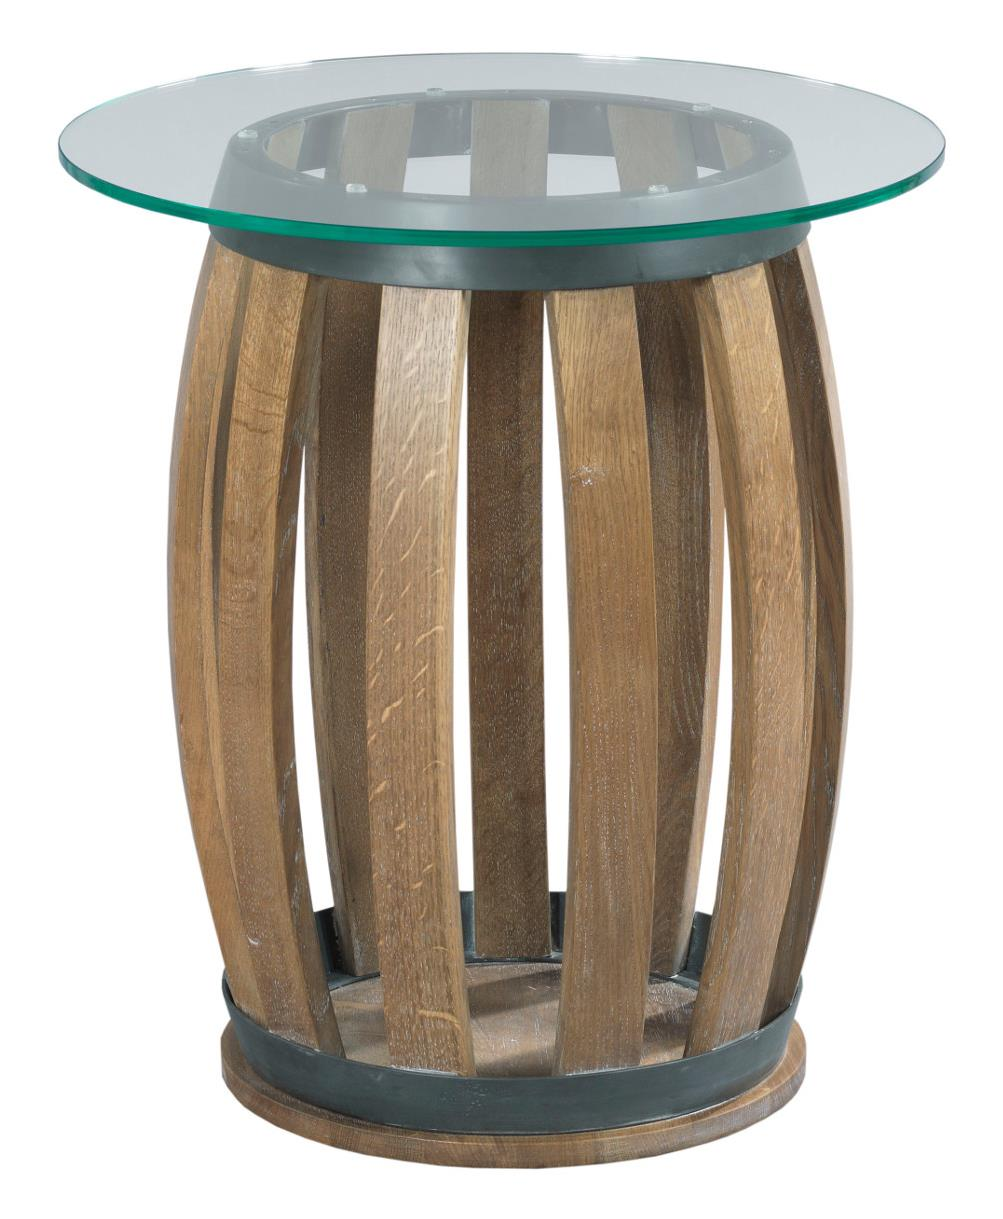 delivery estimates northeast factory direct cleveland eastlake products kincaid furniture color stone ridge round accent table with drawer wine barrel blue ginger jar lamps nate